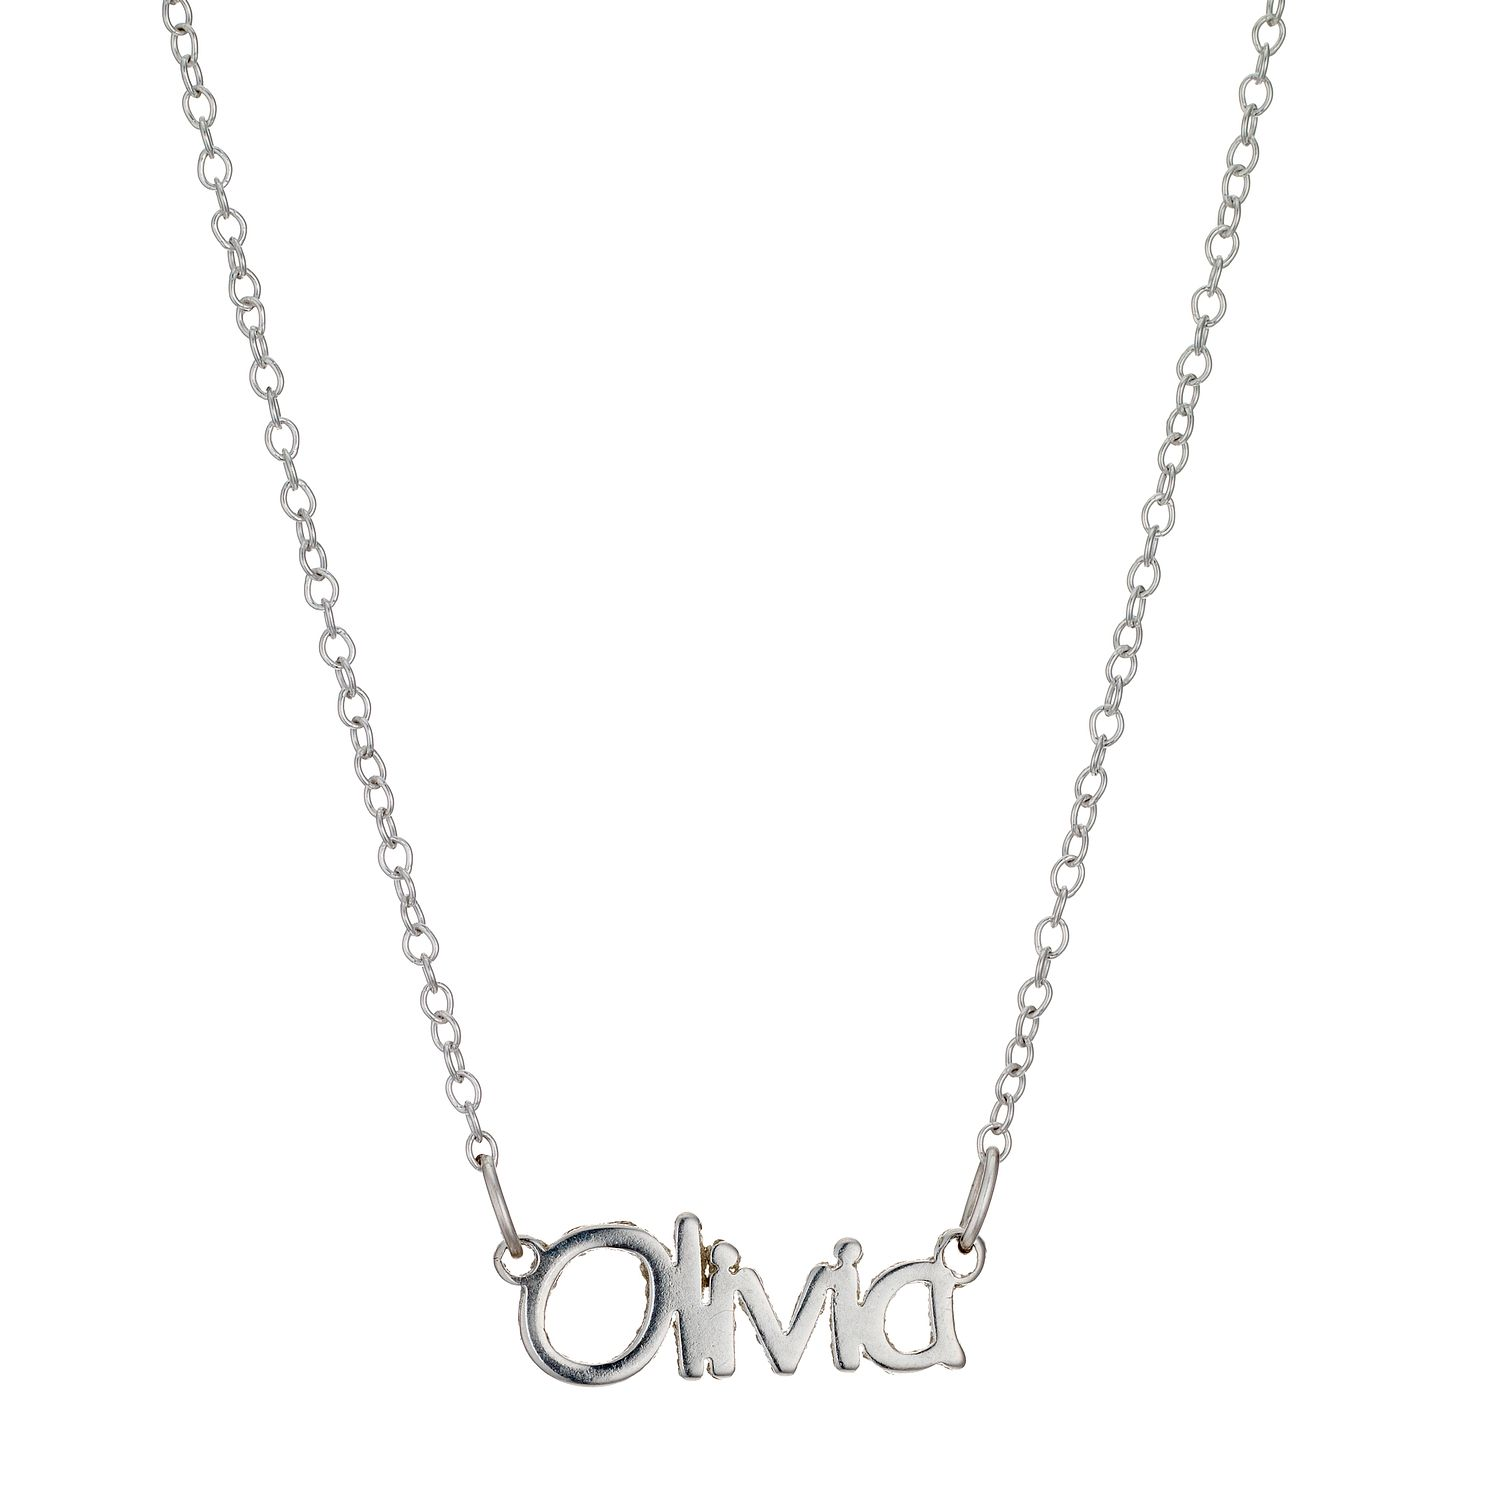 pendant necklace chain sterling jewellery name np csc silver index with sweet